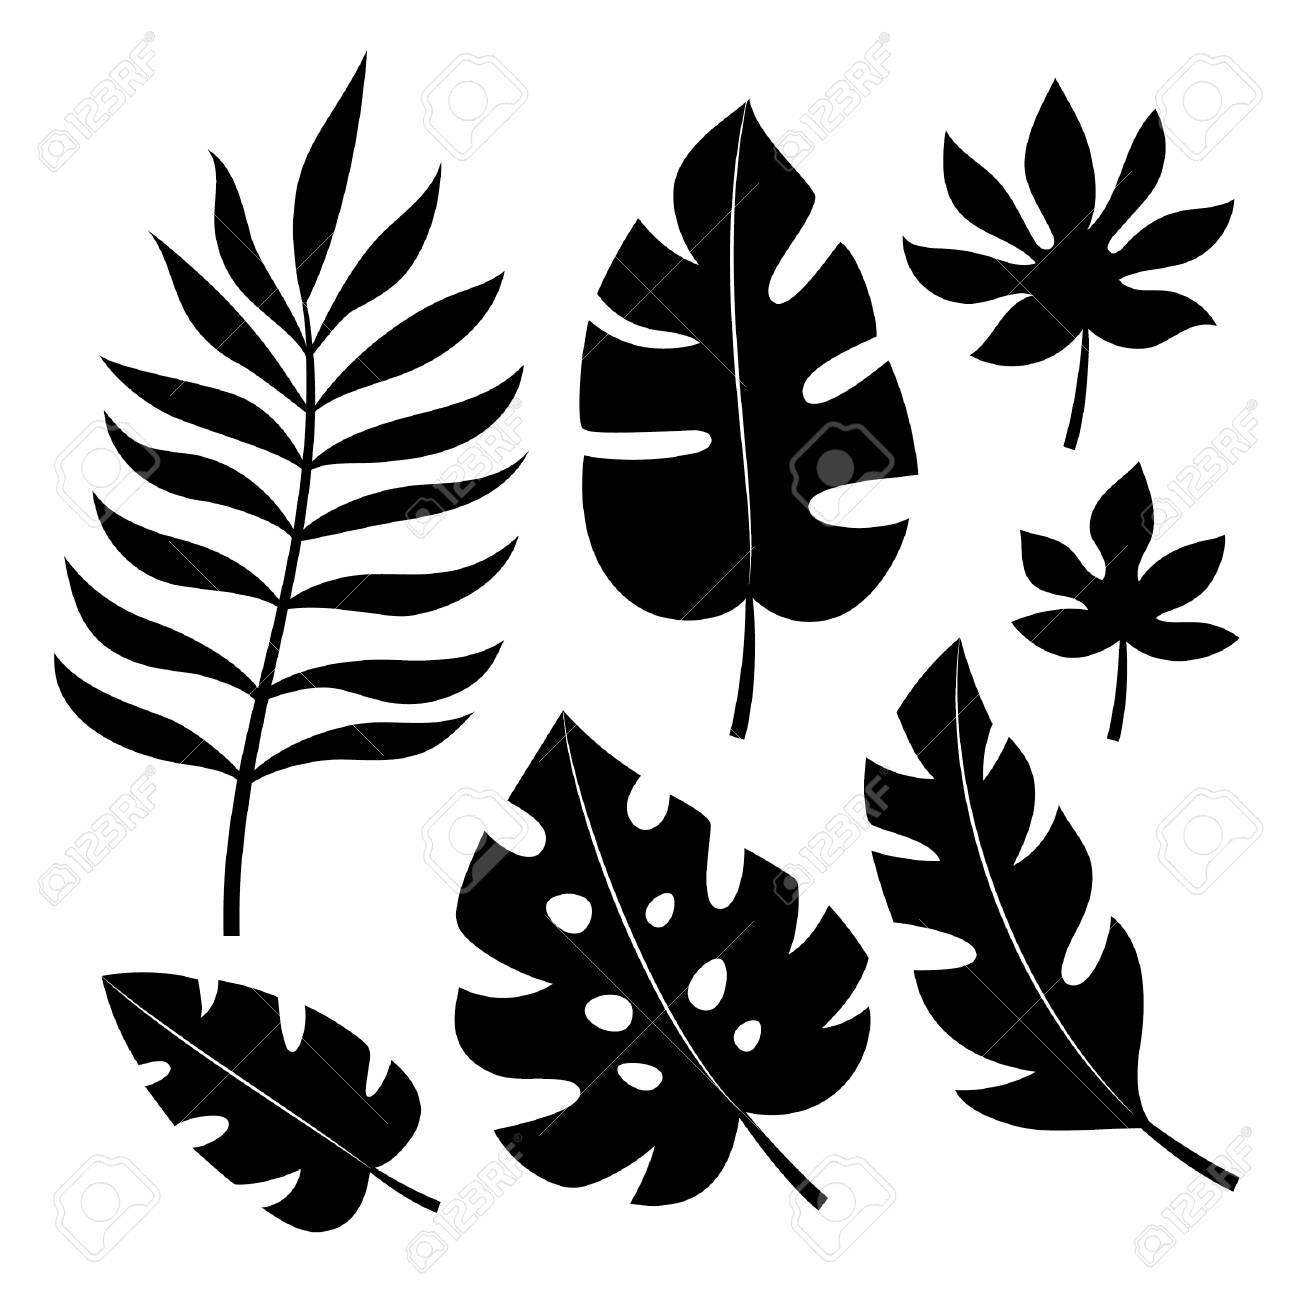 Set Of Tropical Leaves Vector Illustration Royalty Free Cliparts Vectors And Stock Illustration Image 68563599 Tropical silhouette seamless vector pattern. set of tropical leaves vector illustration